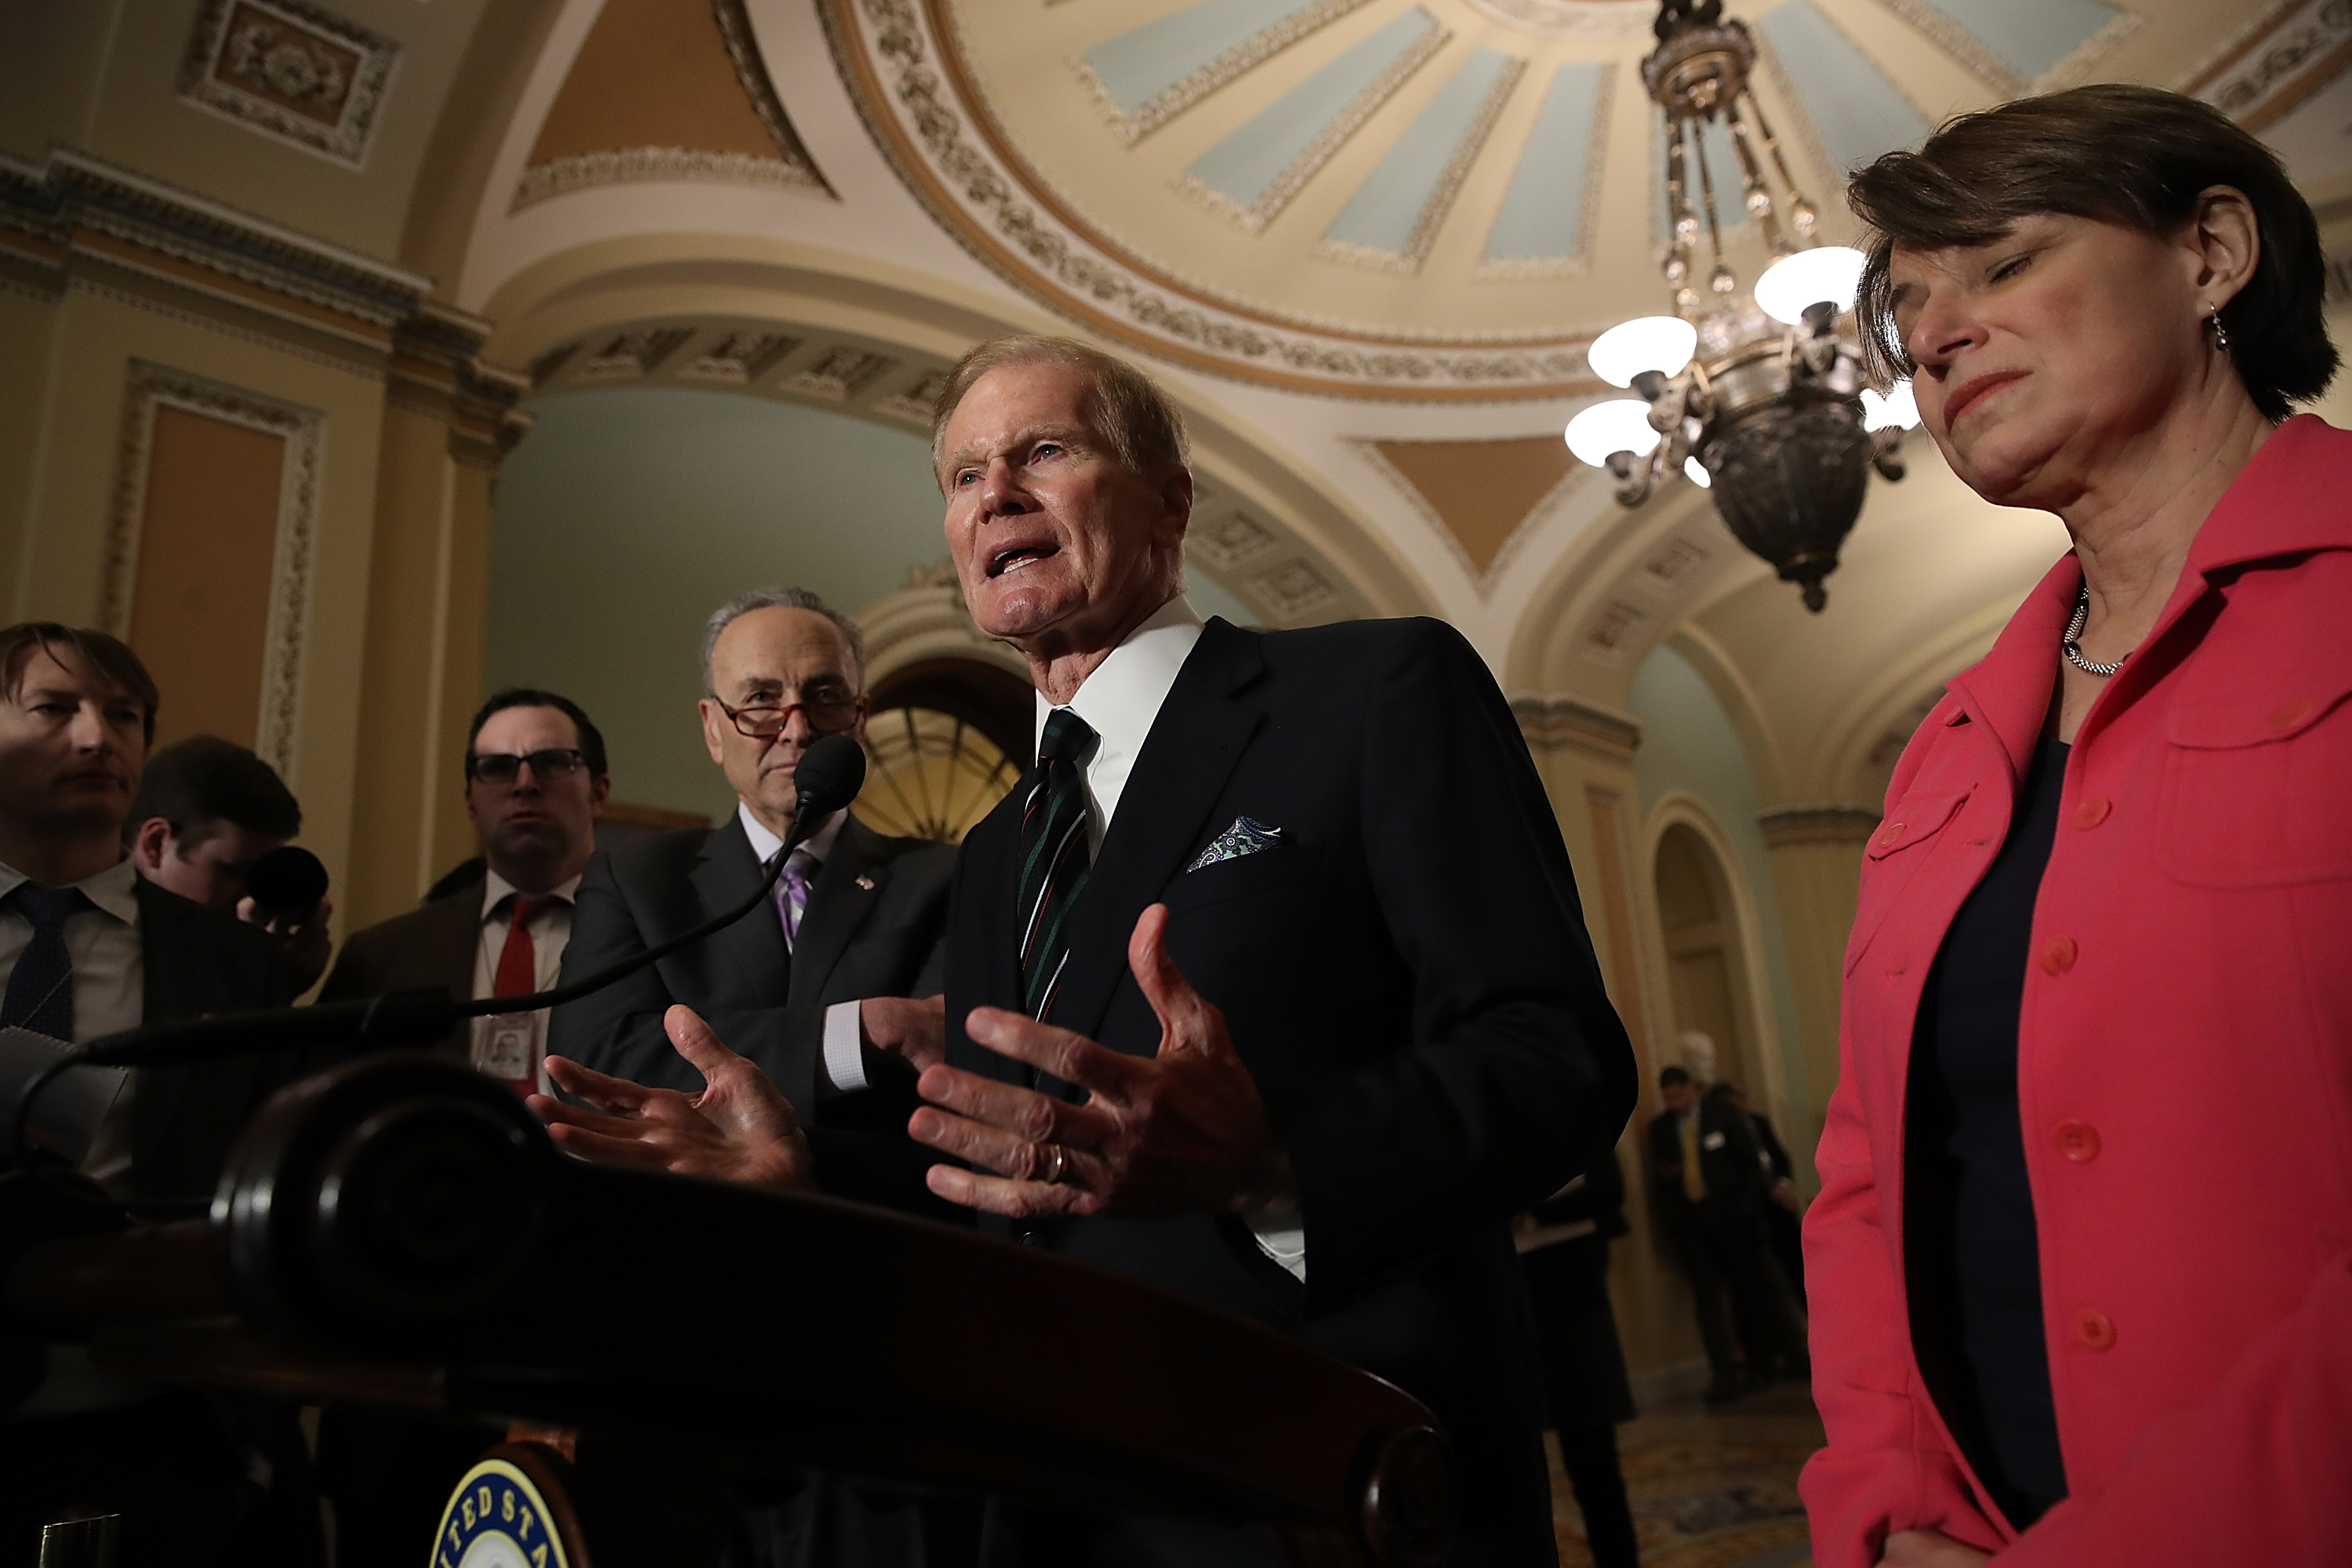 WASHINGTON, DC - FEBRUARY 27: Sen. Bill Nelson (D-FL) speaks at a press conference at the U.S. Capitol February 27, 2018 in Washington, DC. Senate Minority Leader Chuck Schumer answered a range of questions related primarily to planned gun reform legislation by the U.S. Congress. (Photo by Win McNamee/Getty Images)